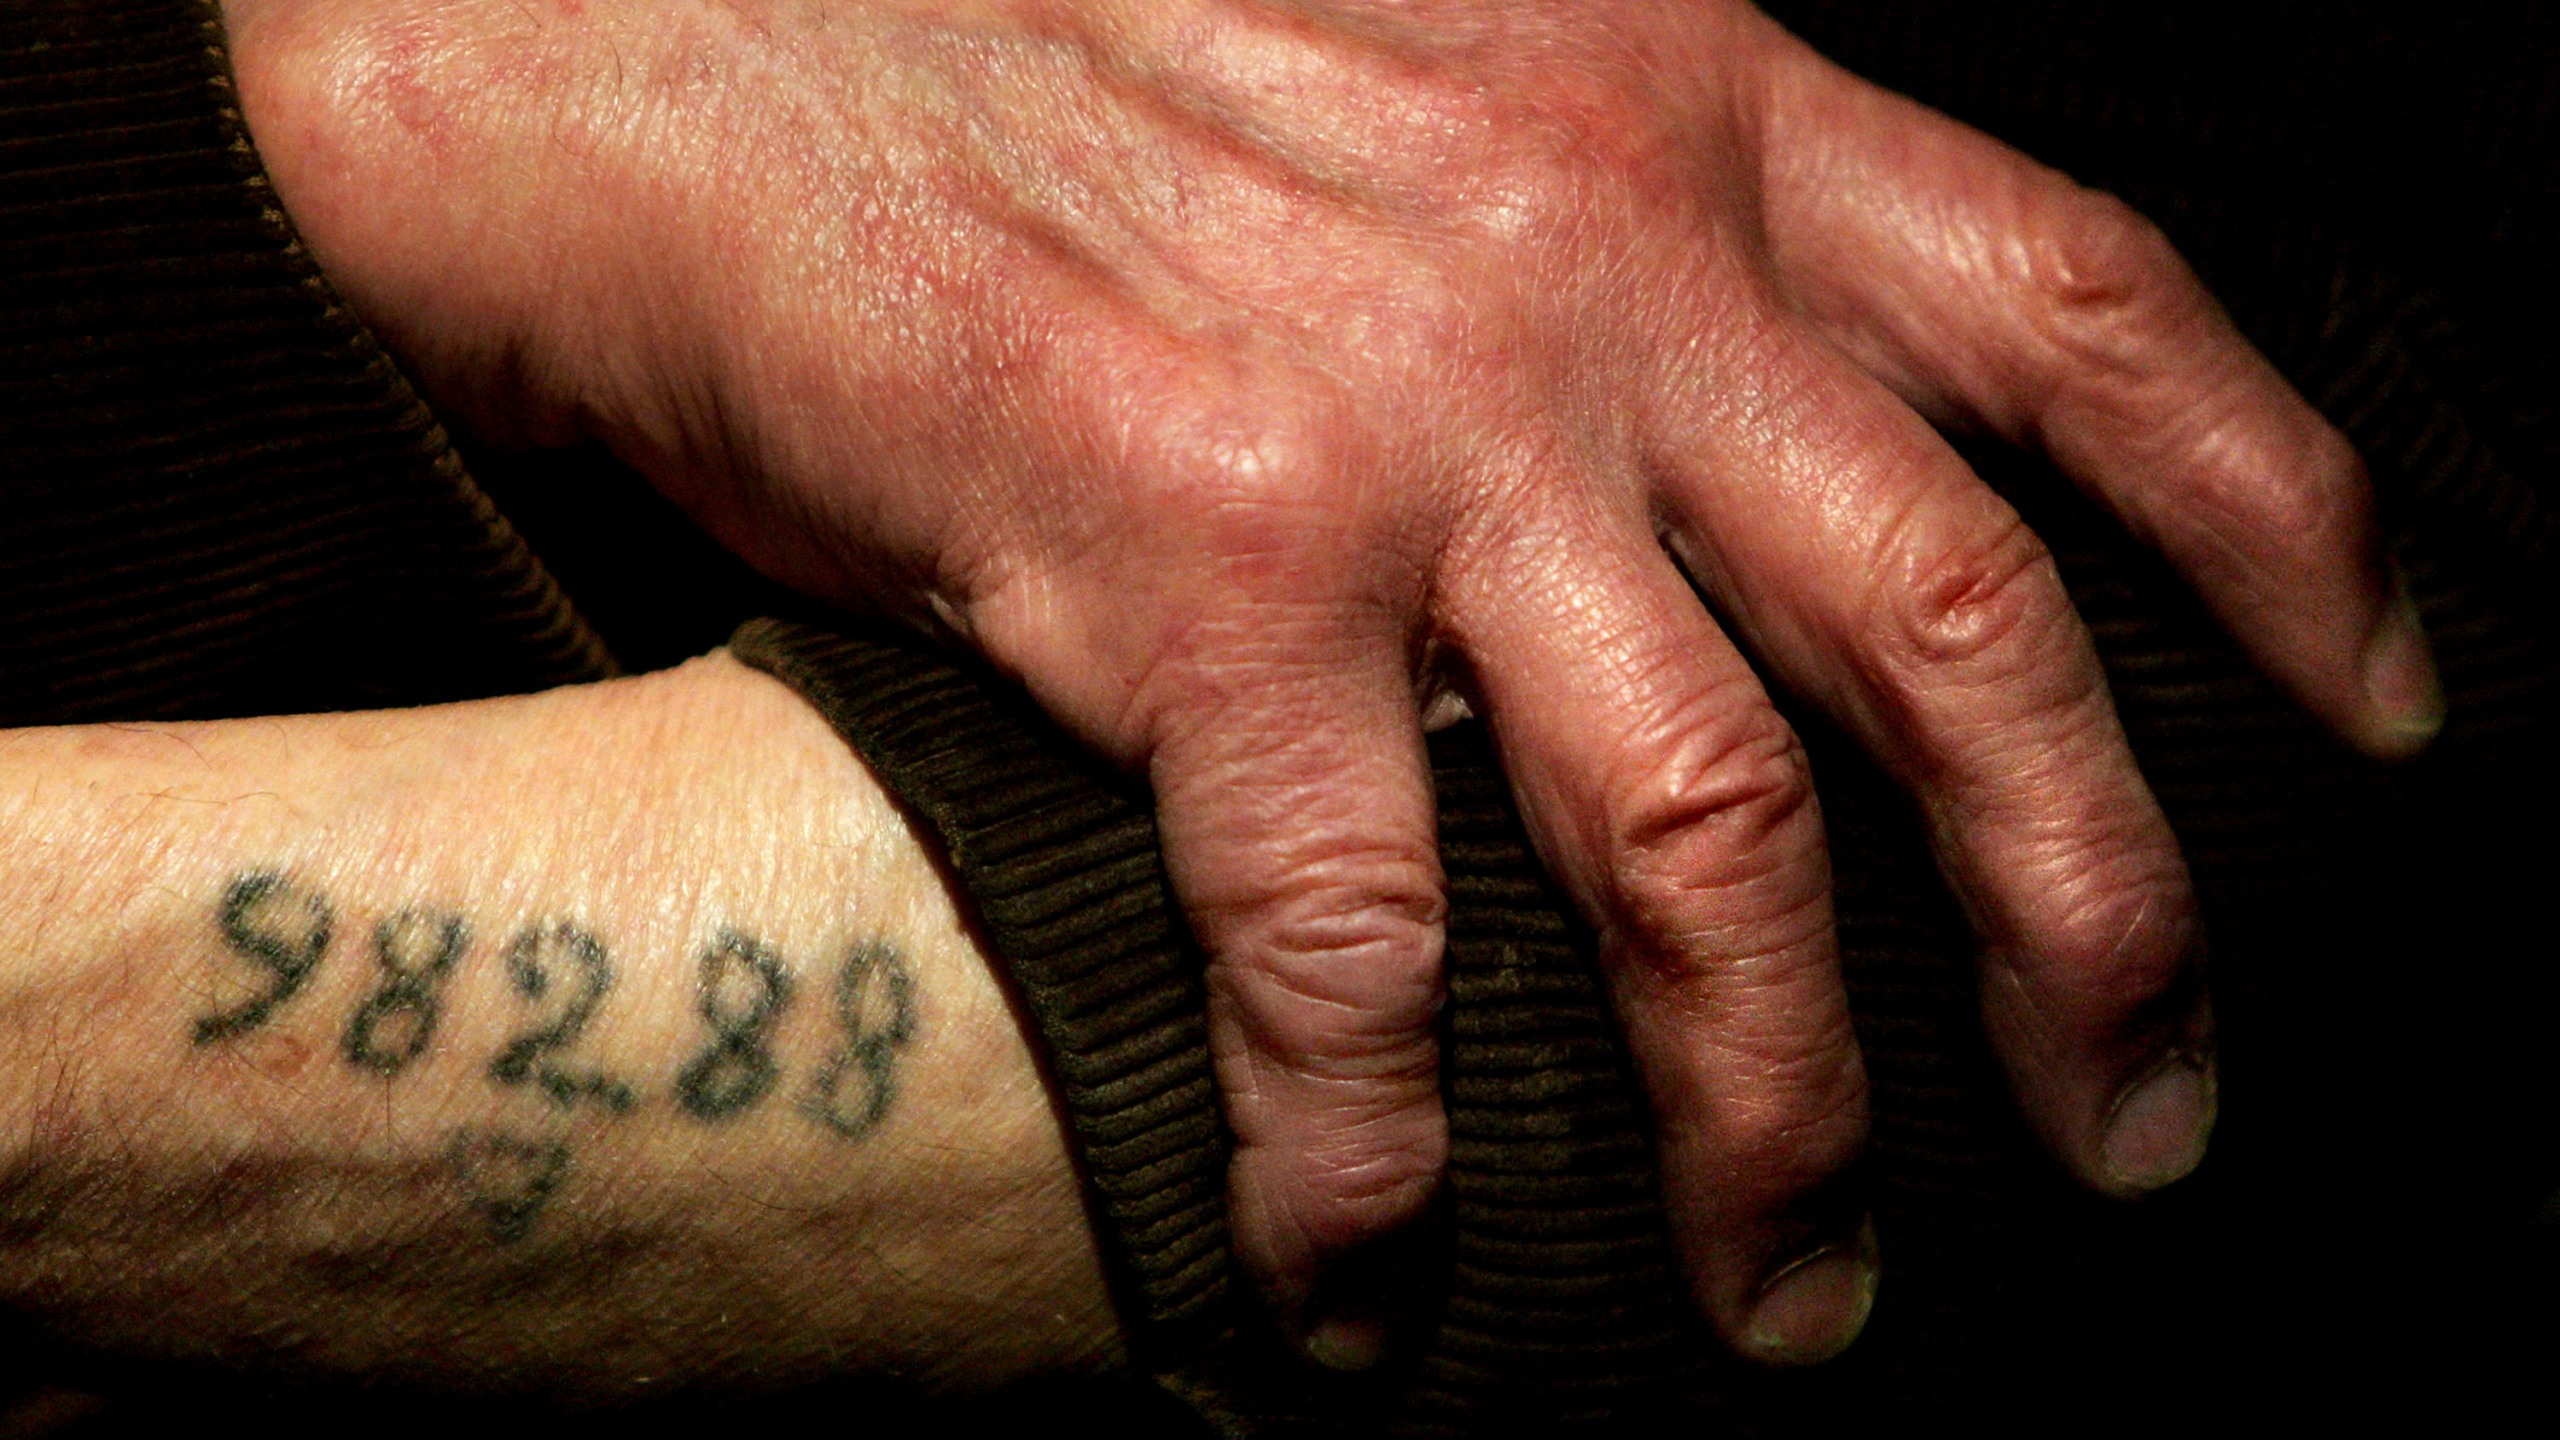 Auschwitz survivor Leon Greenman, prison number 98288, displays his number tattoo on Dec. 9, 2004, at the Jewish Museum in London. (Ian Waldie / Getty Images)